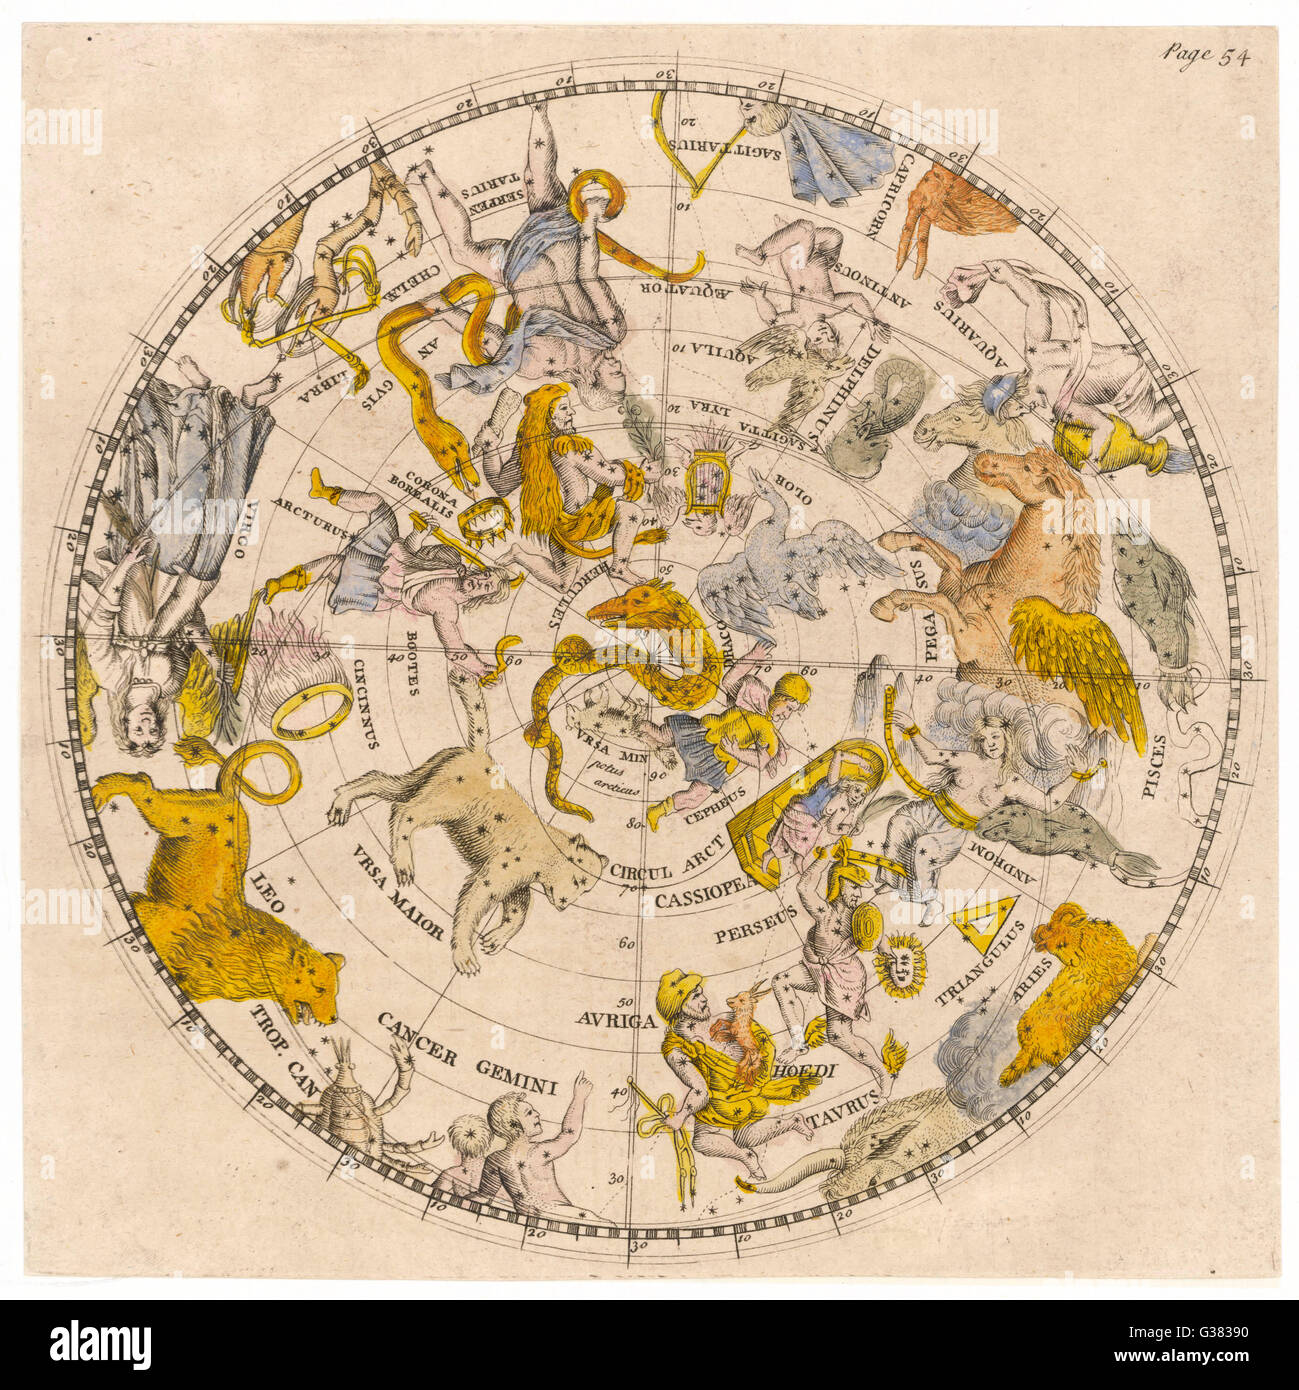 The signs of the zodiac         Date: 1805 - Stock Image